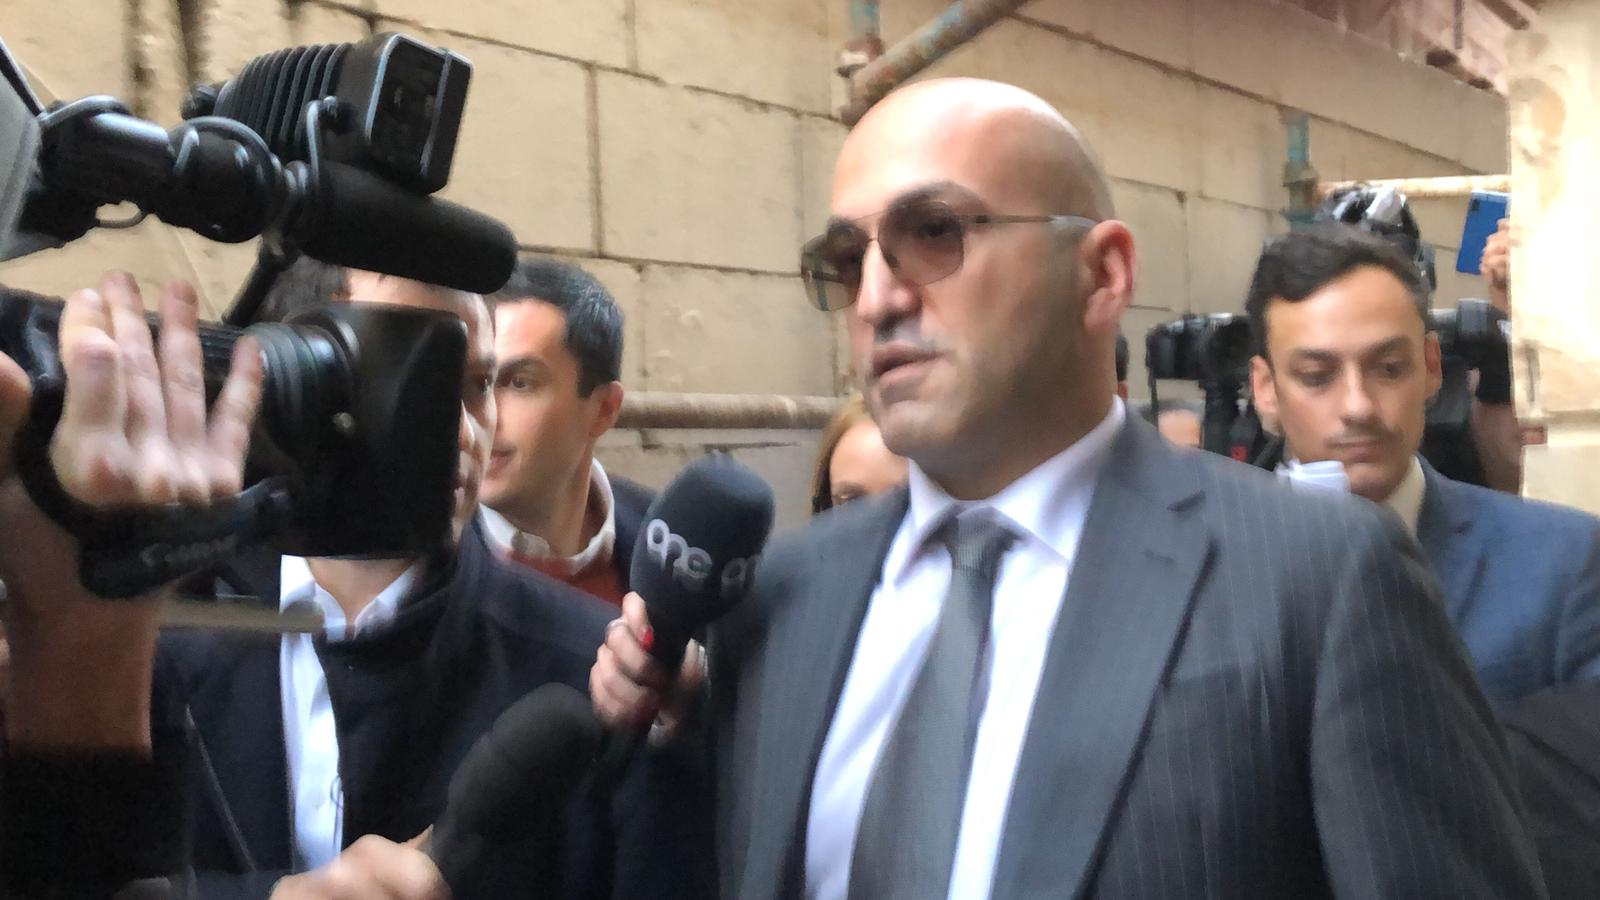 Yorgen Fenech wants judge Edwina Grima removed from his trial